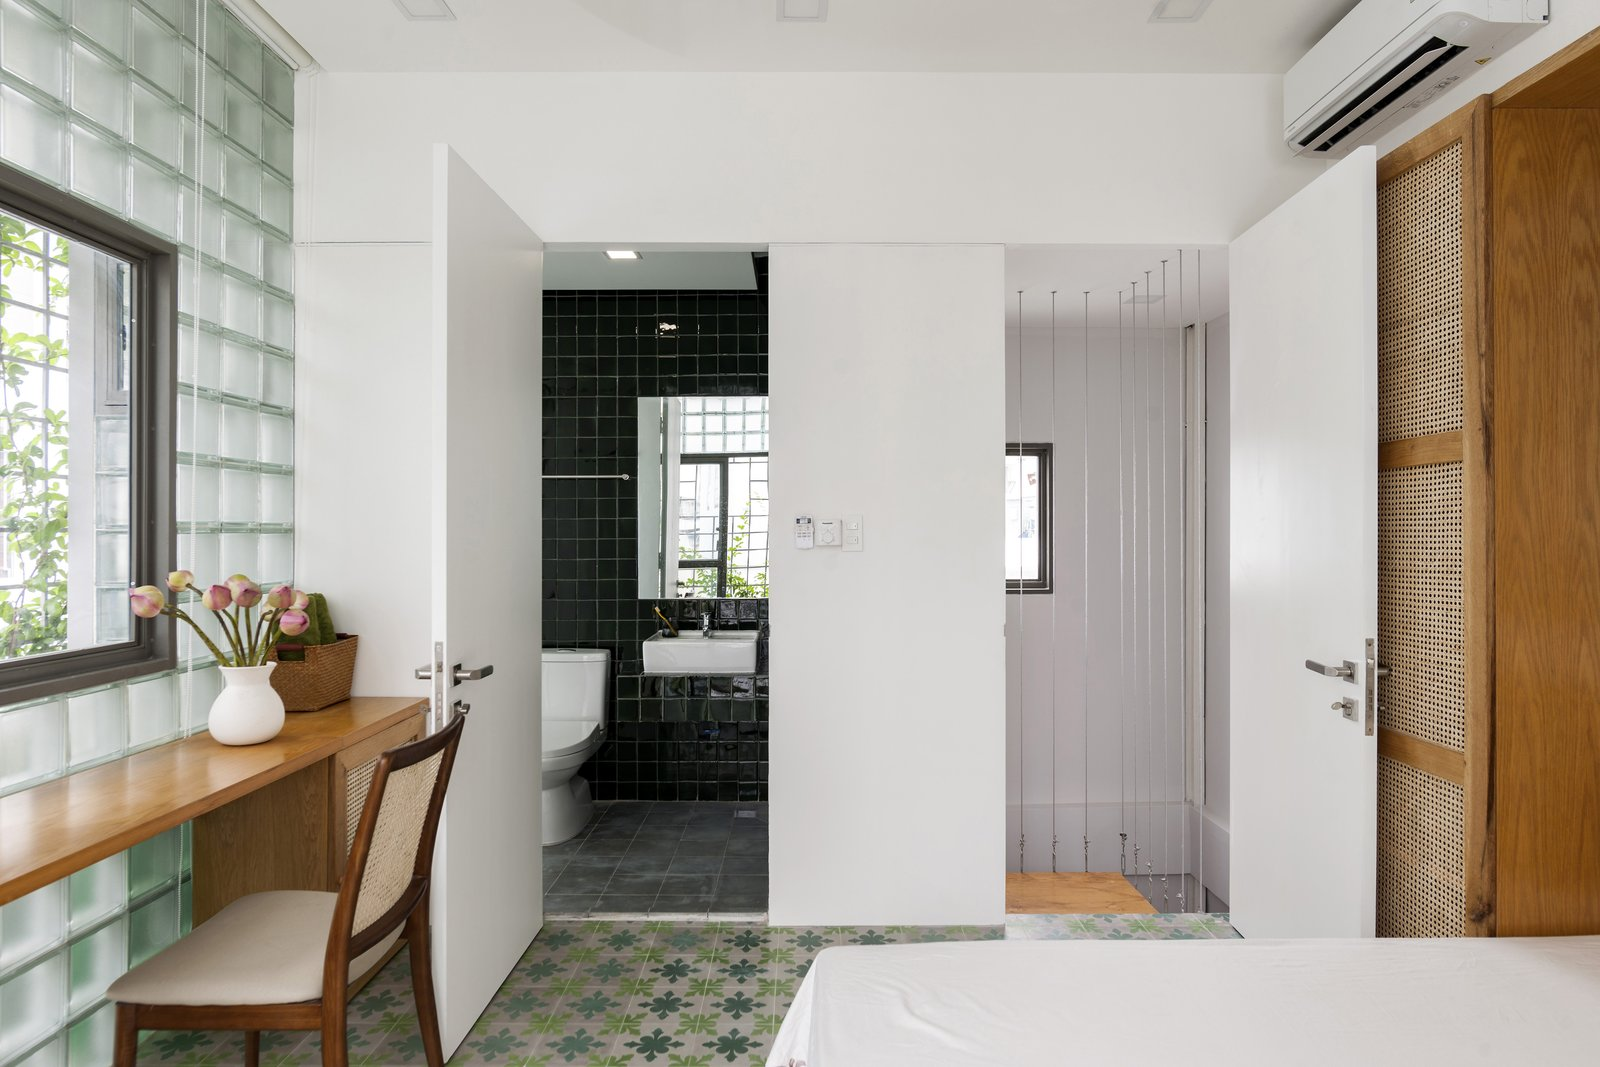 Bath Room, Cement Tile Floor, Ceramic Tile Wall, One Piece Toilet, and Wall Mount Sink Handmade deep green ceramic tile covers the wall in the master bath.  Photo 10 of 12 in This Vietnamese Micro Home Is as Practical as It Is Radiant